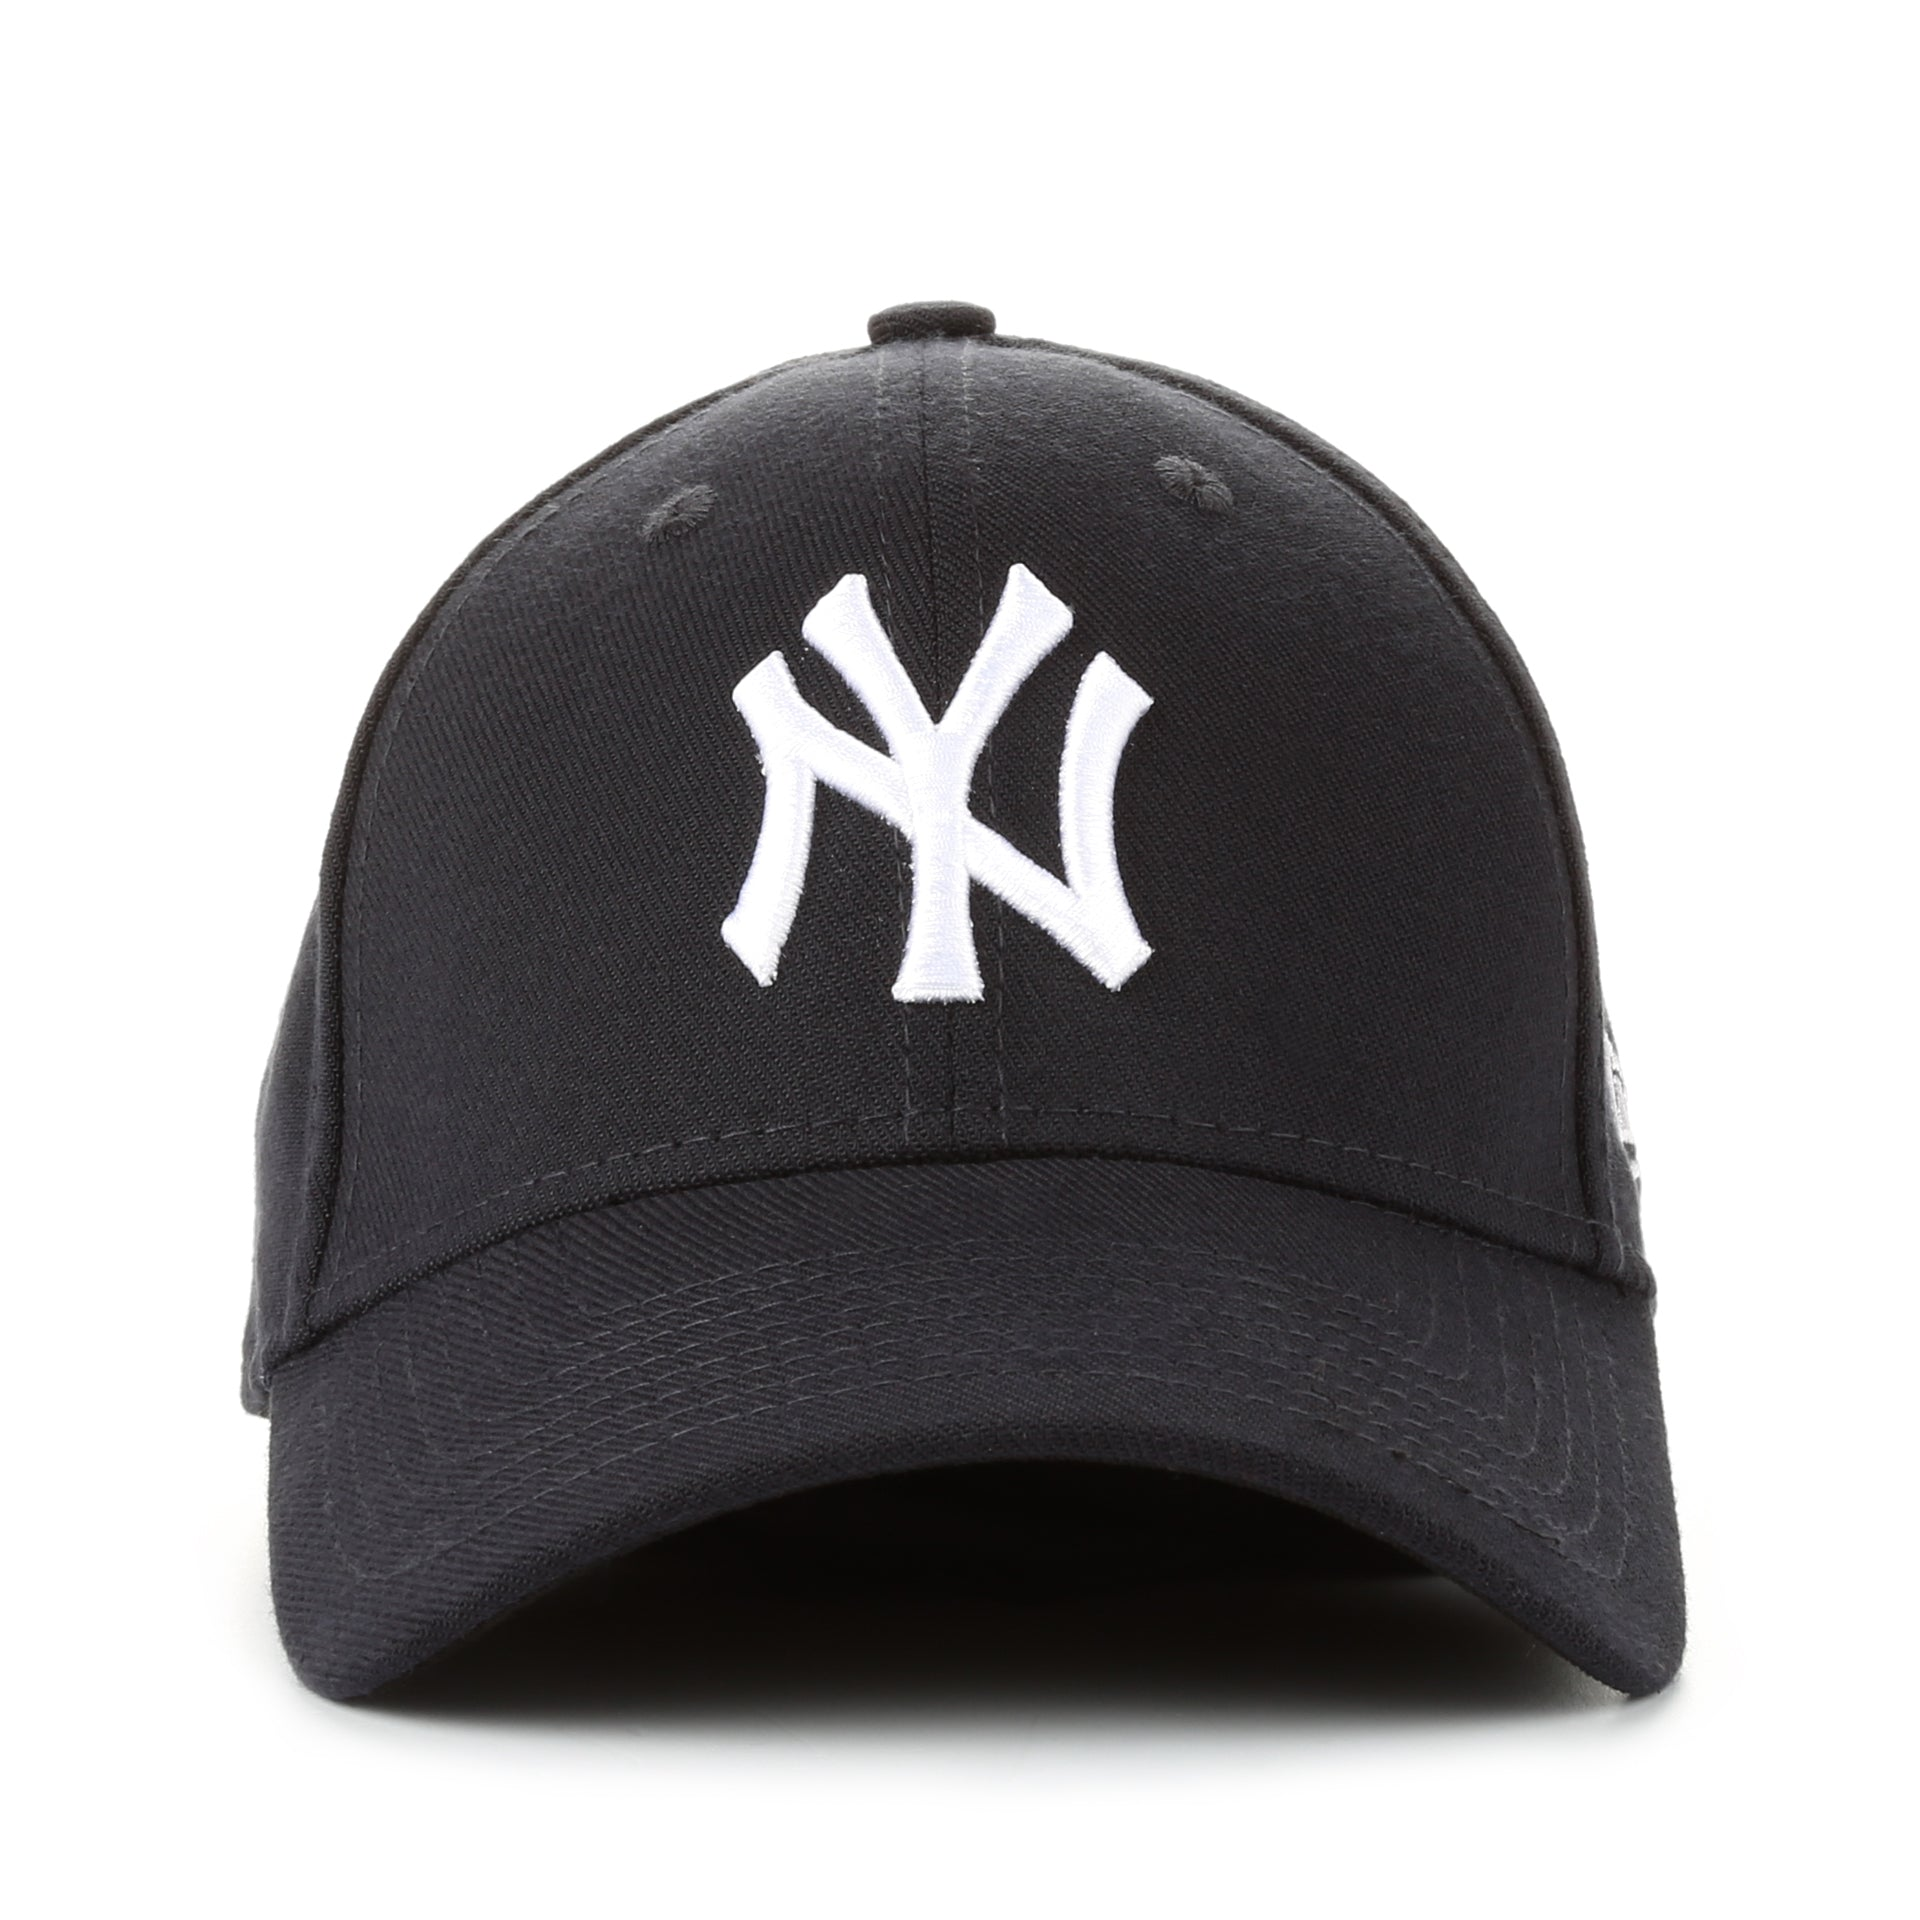 New Era 39Thirty Team Classic Stretch Fit Cap - New York Yankees Navy b01a5e6abc6